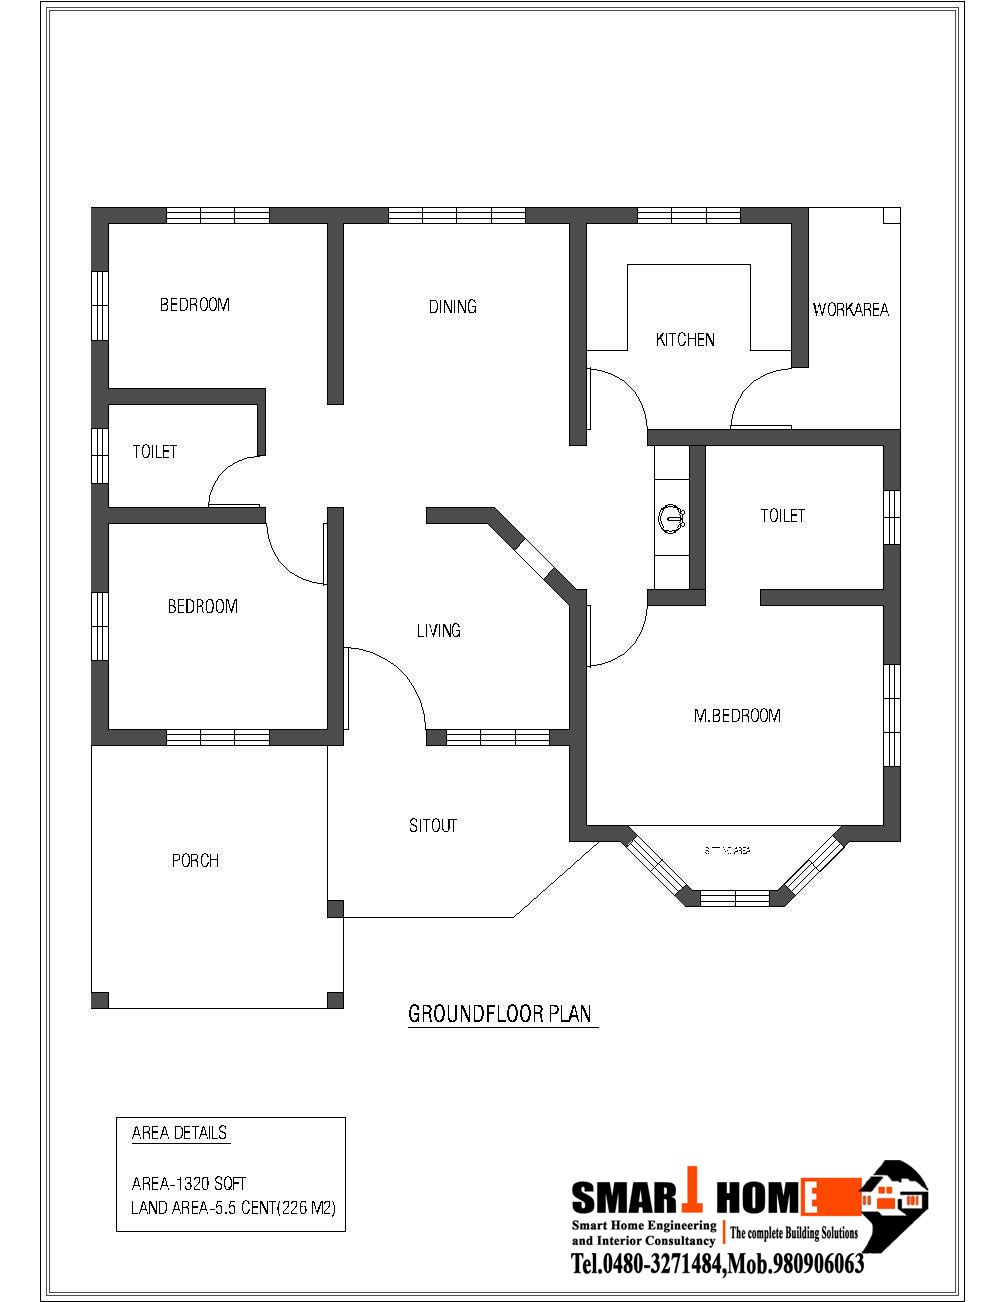 3 Bed 2 Bath Garage House Plans Floor Plan Design House Plans